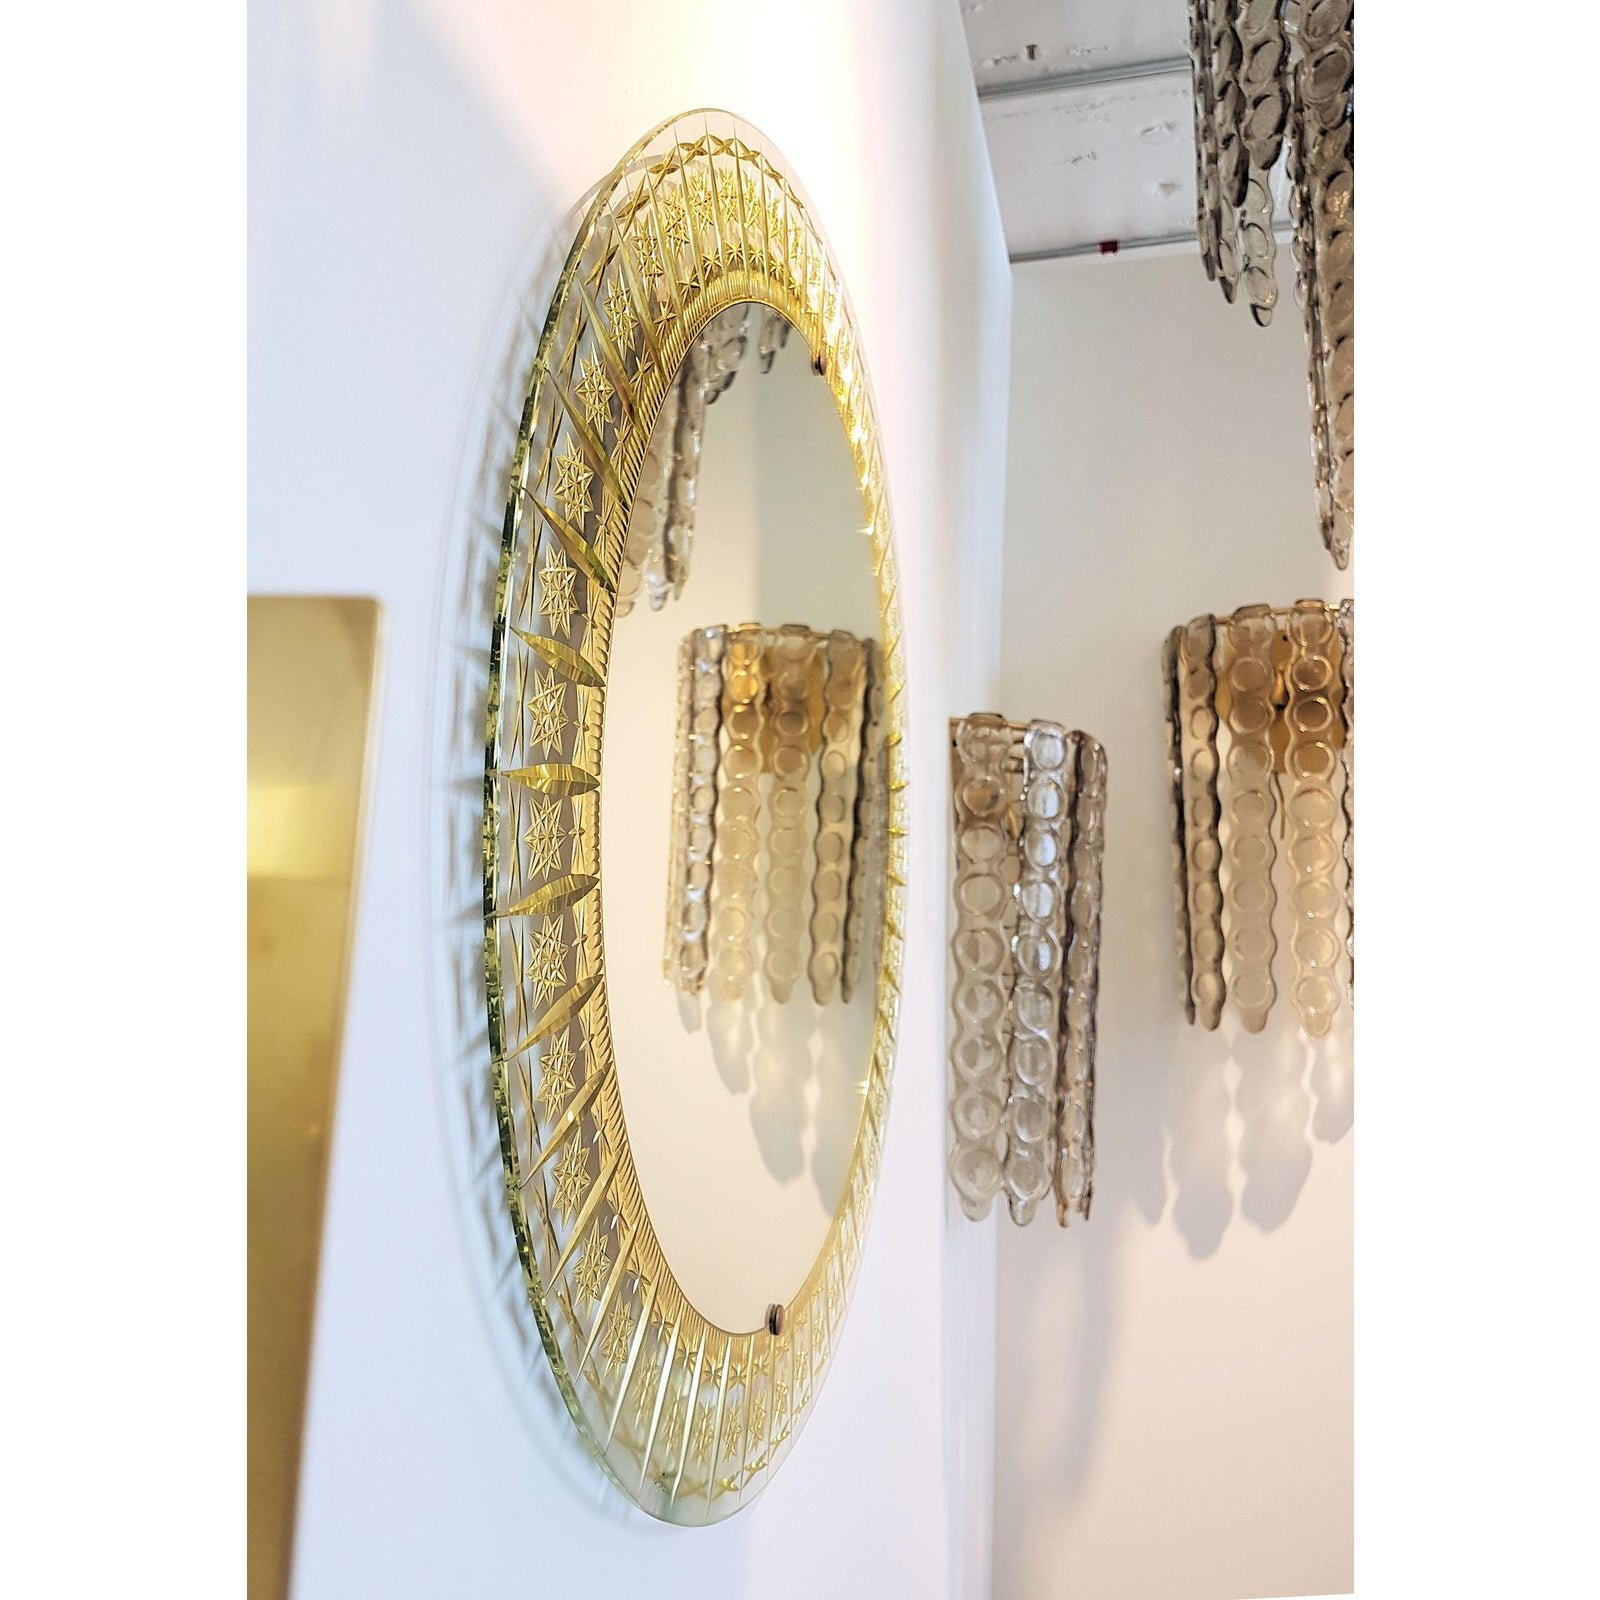 Image of: Vintage Cristal Arte All Glass Mirror With Gold Inclusions Boston Design Center